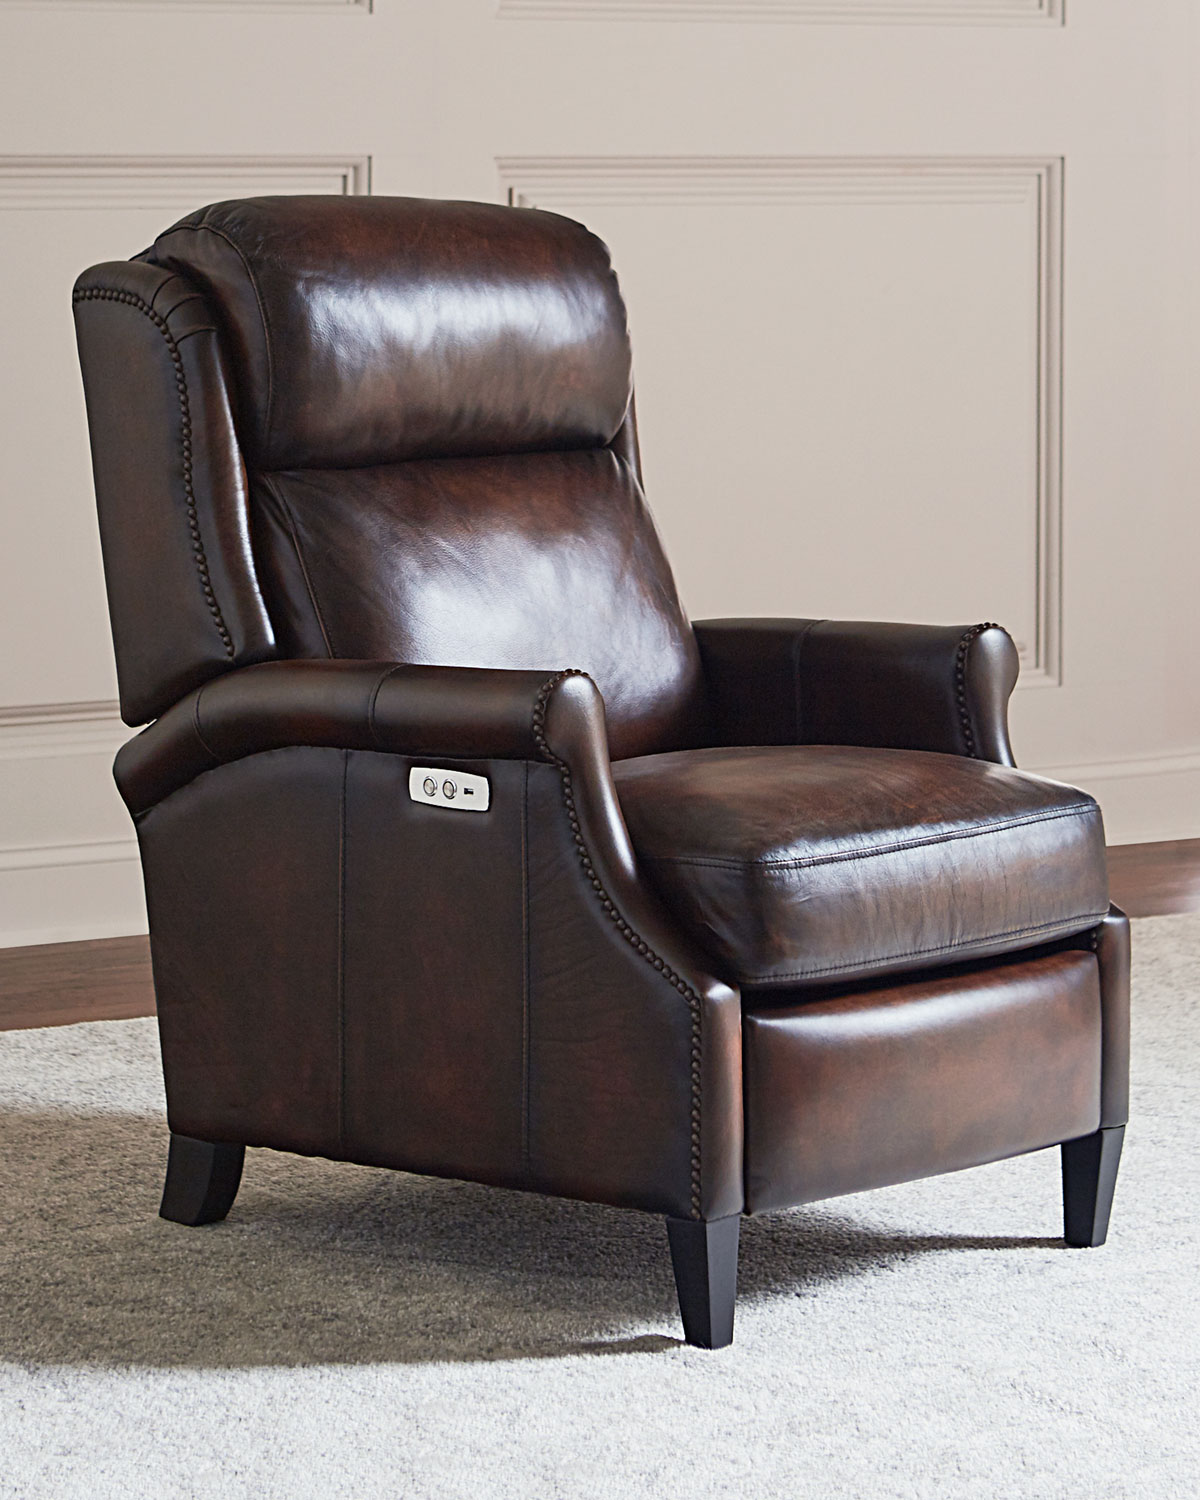 bernhardt brown leather club chair covers on folding chairs robin powered recliner neiman marcus bernhardtrobin